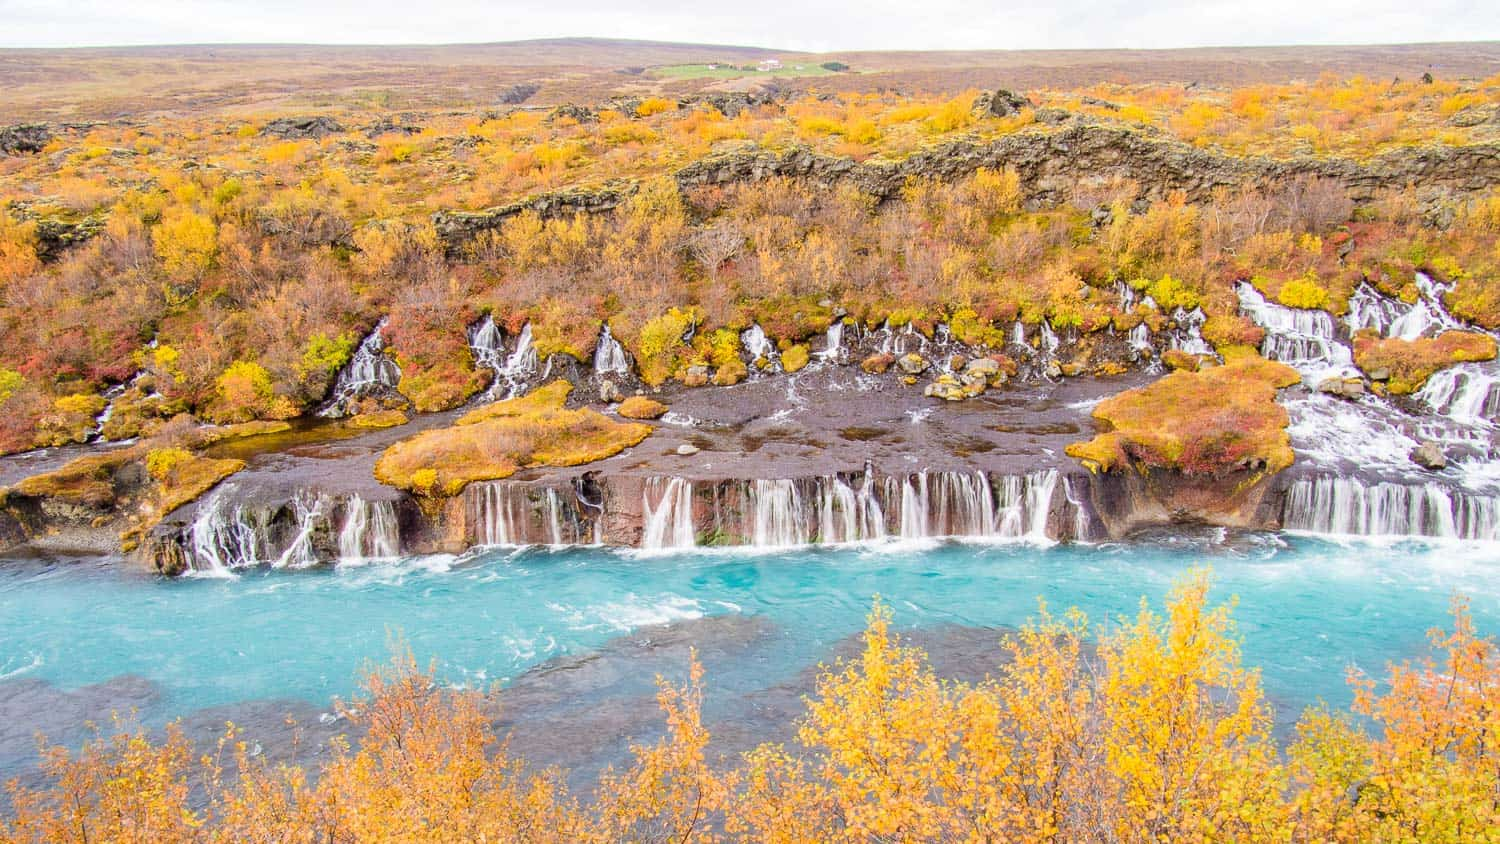 The first step of planning a trip to Iceland is choosing which season to travel in. Here are the autumn colours of Hraunfossar waterfall in September,